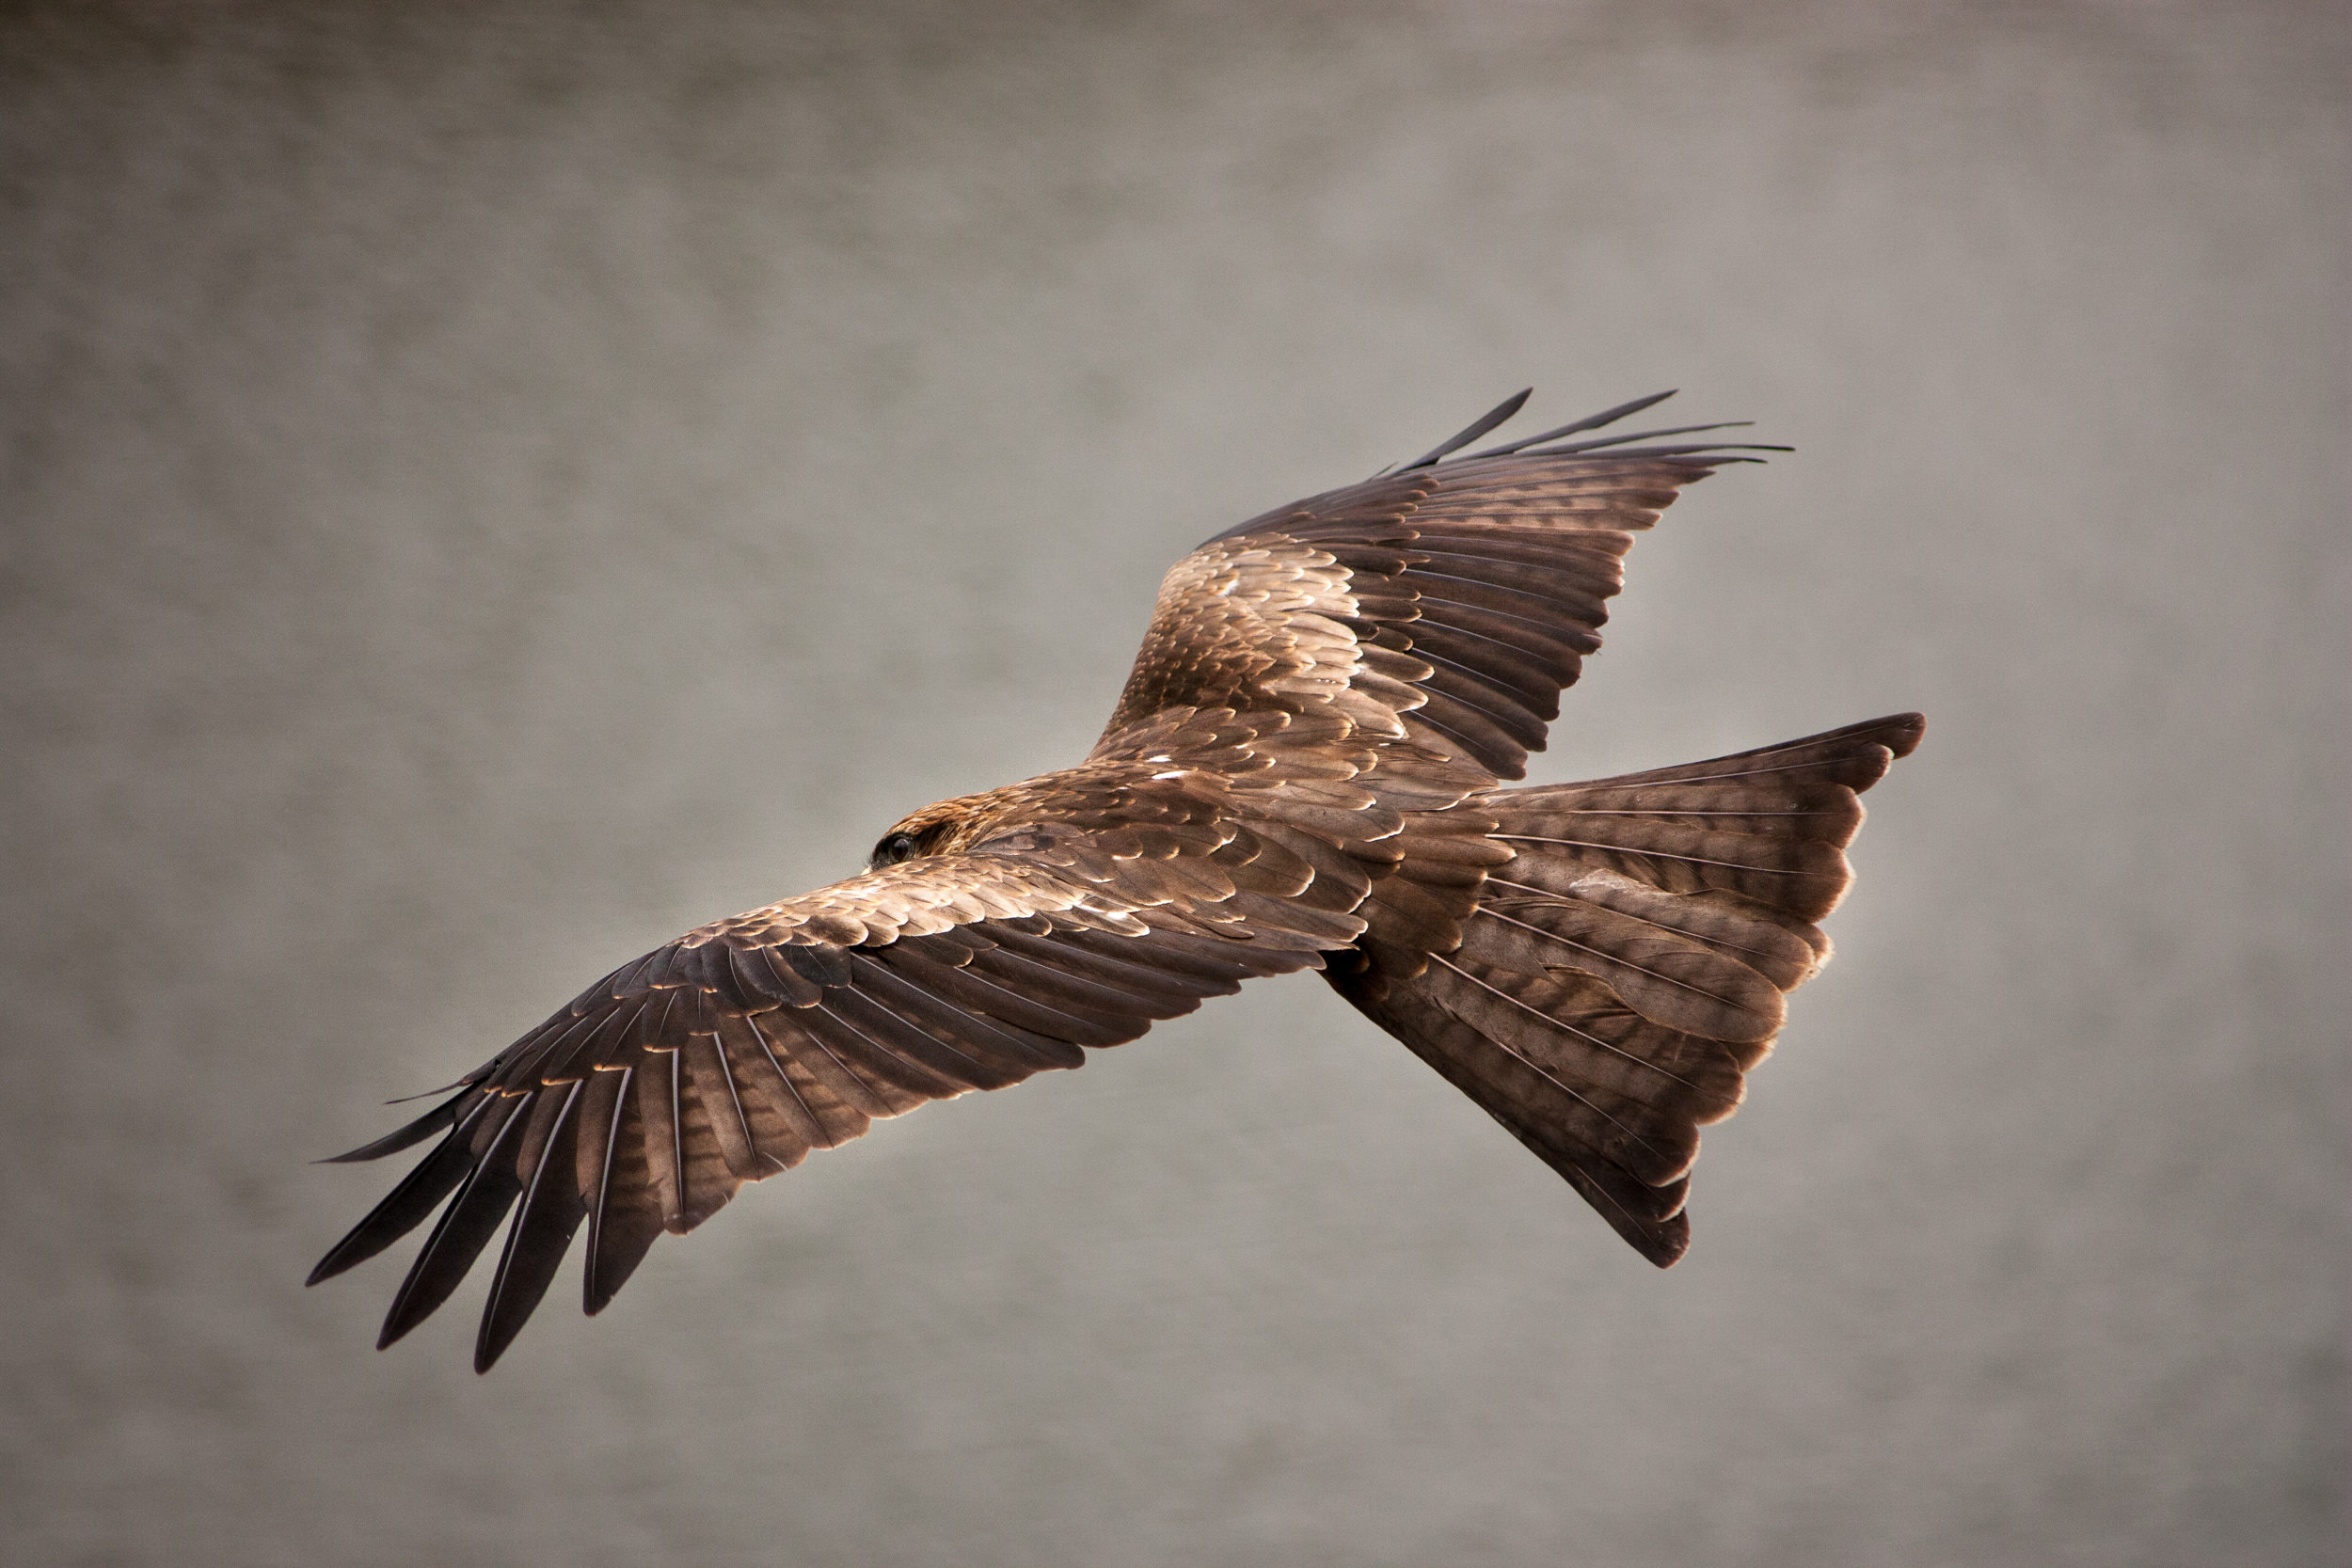 Canon 450D and EF-S 55-250 IS II... This is one of my first shots when I ventured into wildlife photography in September 2012.